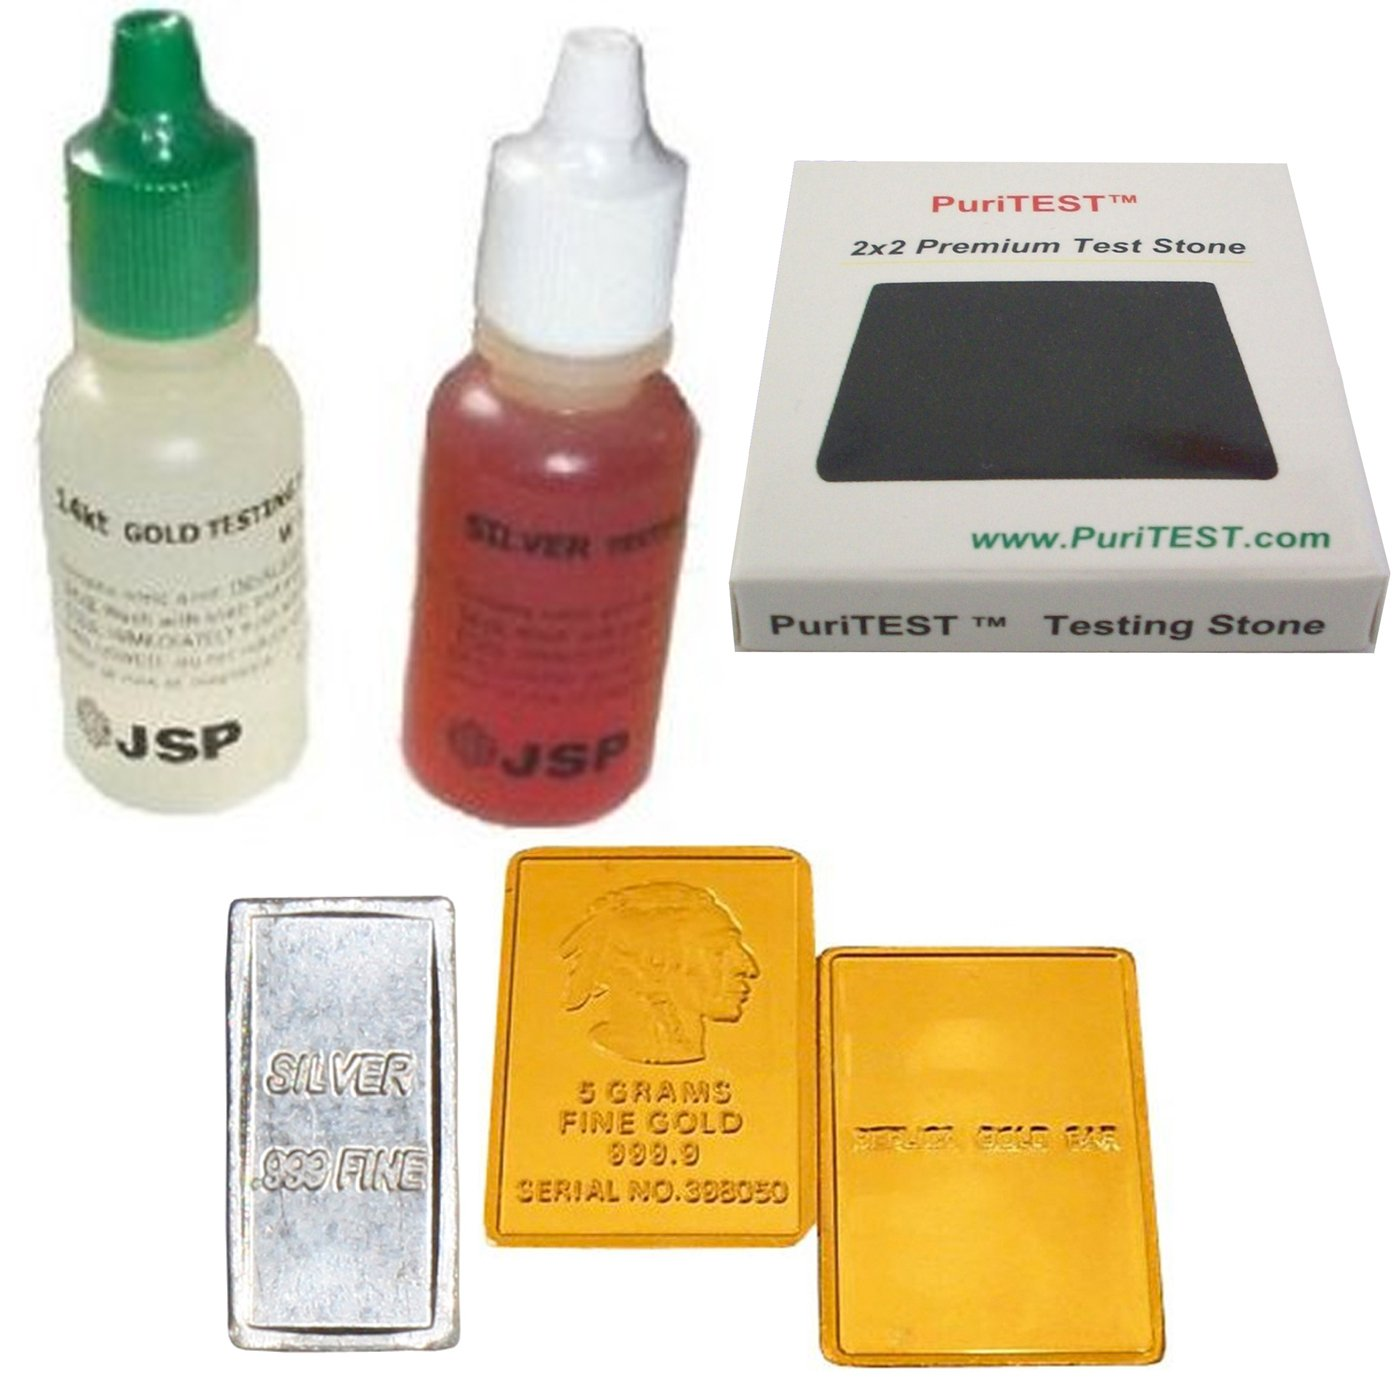 Gold Silver Test Acid Tester 14k Testing Stone Detect Metal 999 Sterling Jewelry + FAKE Gold & REAL Silver Bar Samples by JSP/PuriTEST